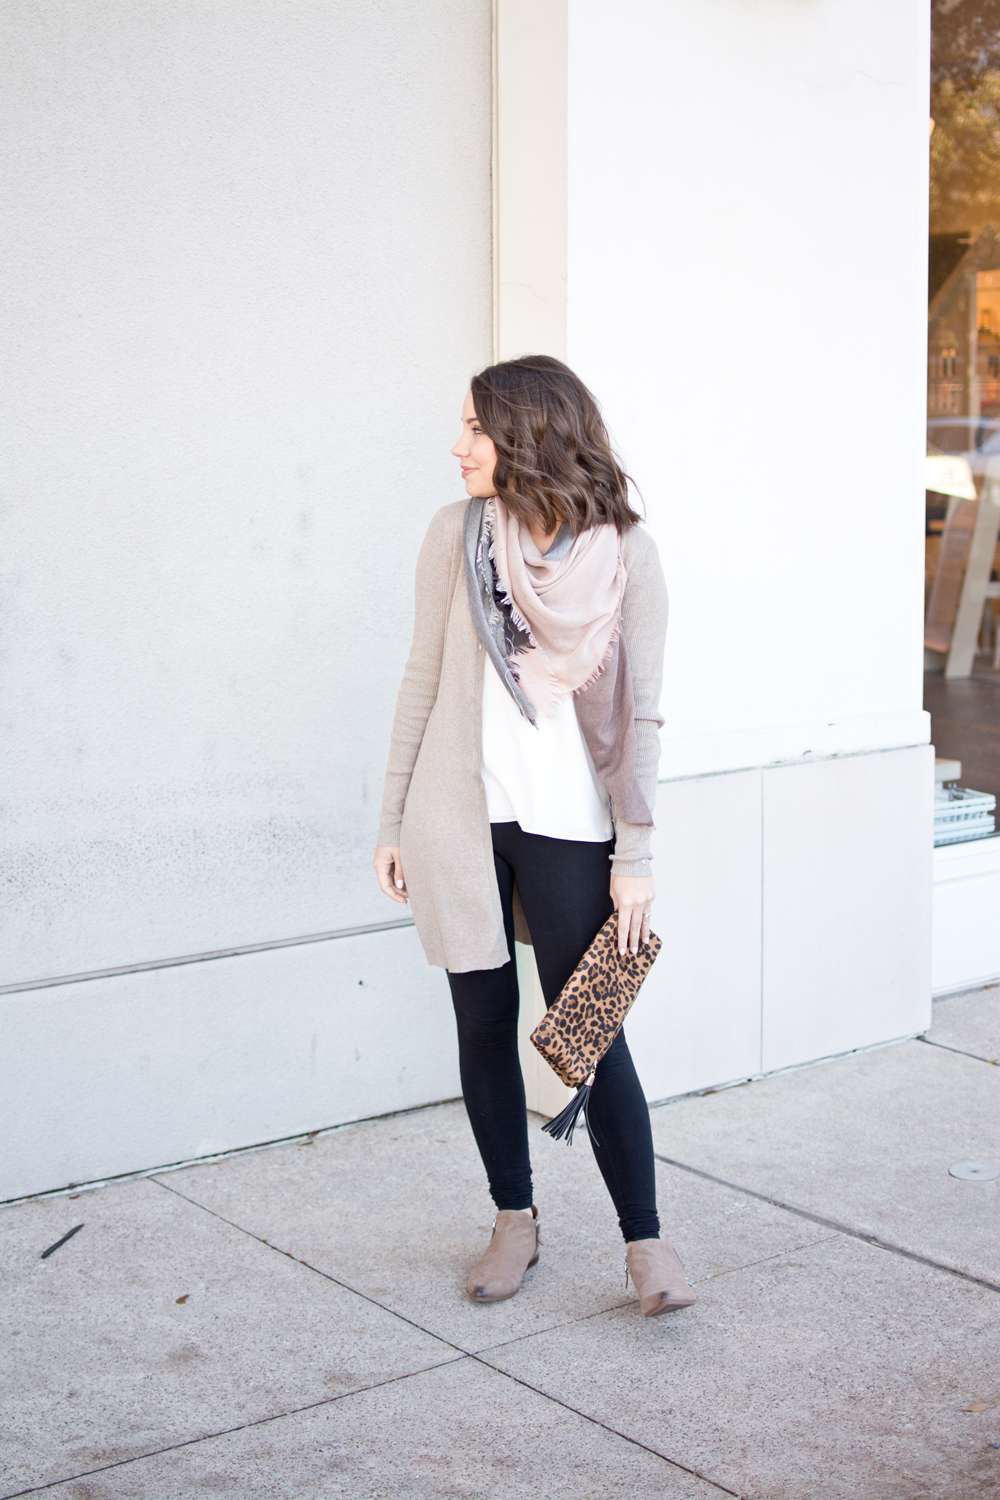 casual winter outfit, blogger style, casual outfit of the day, outfit post, fashion blogger, scarf and cardigan, neutral winter outfit ideas, leopard clutch, how to style a leopard clutch, casual and cute winter outfit ideas